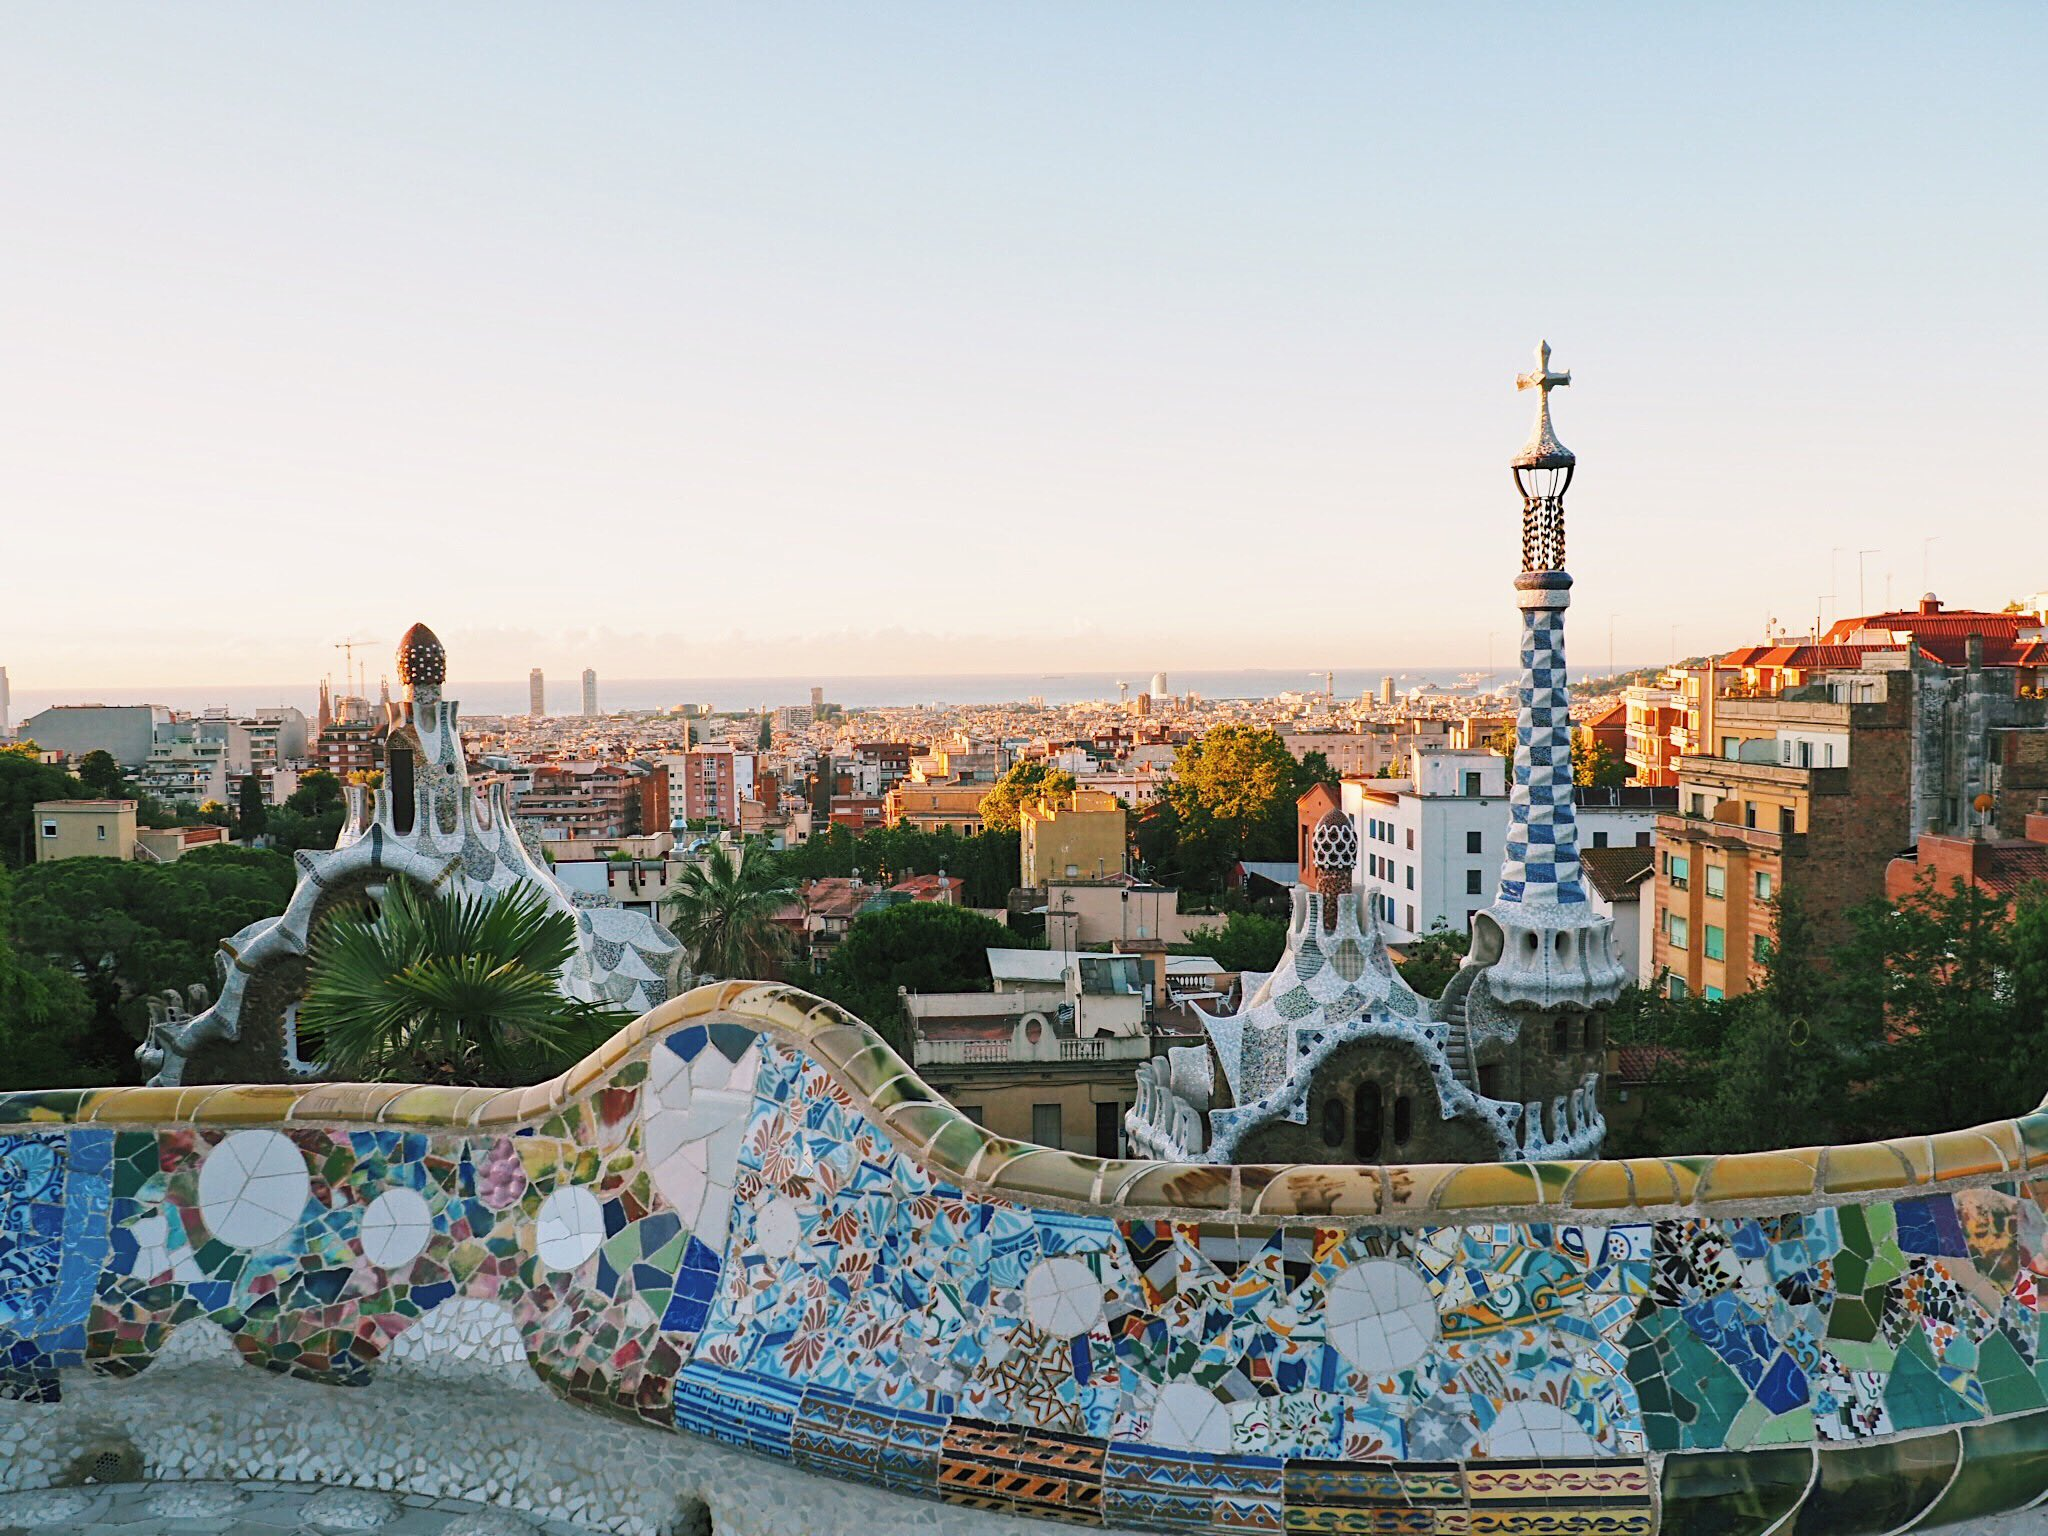 Park Guell at dawn. Photo by me.